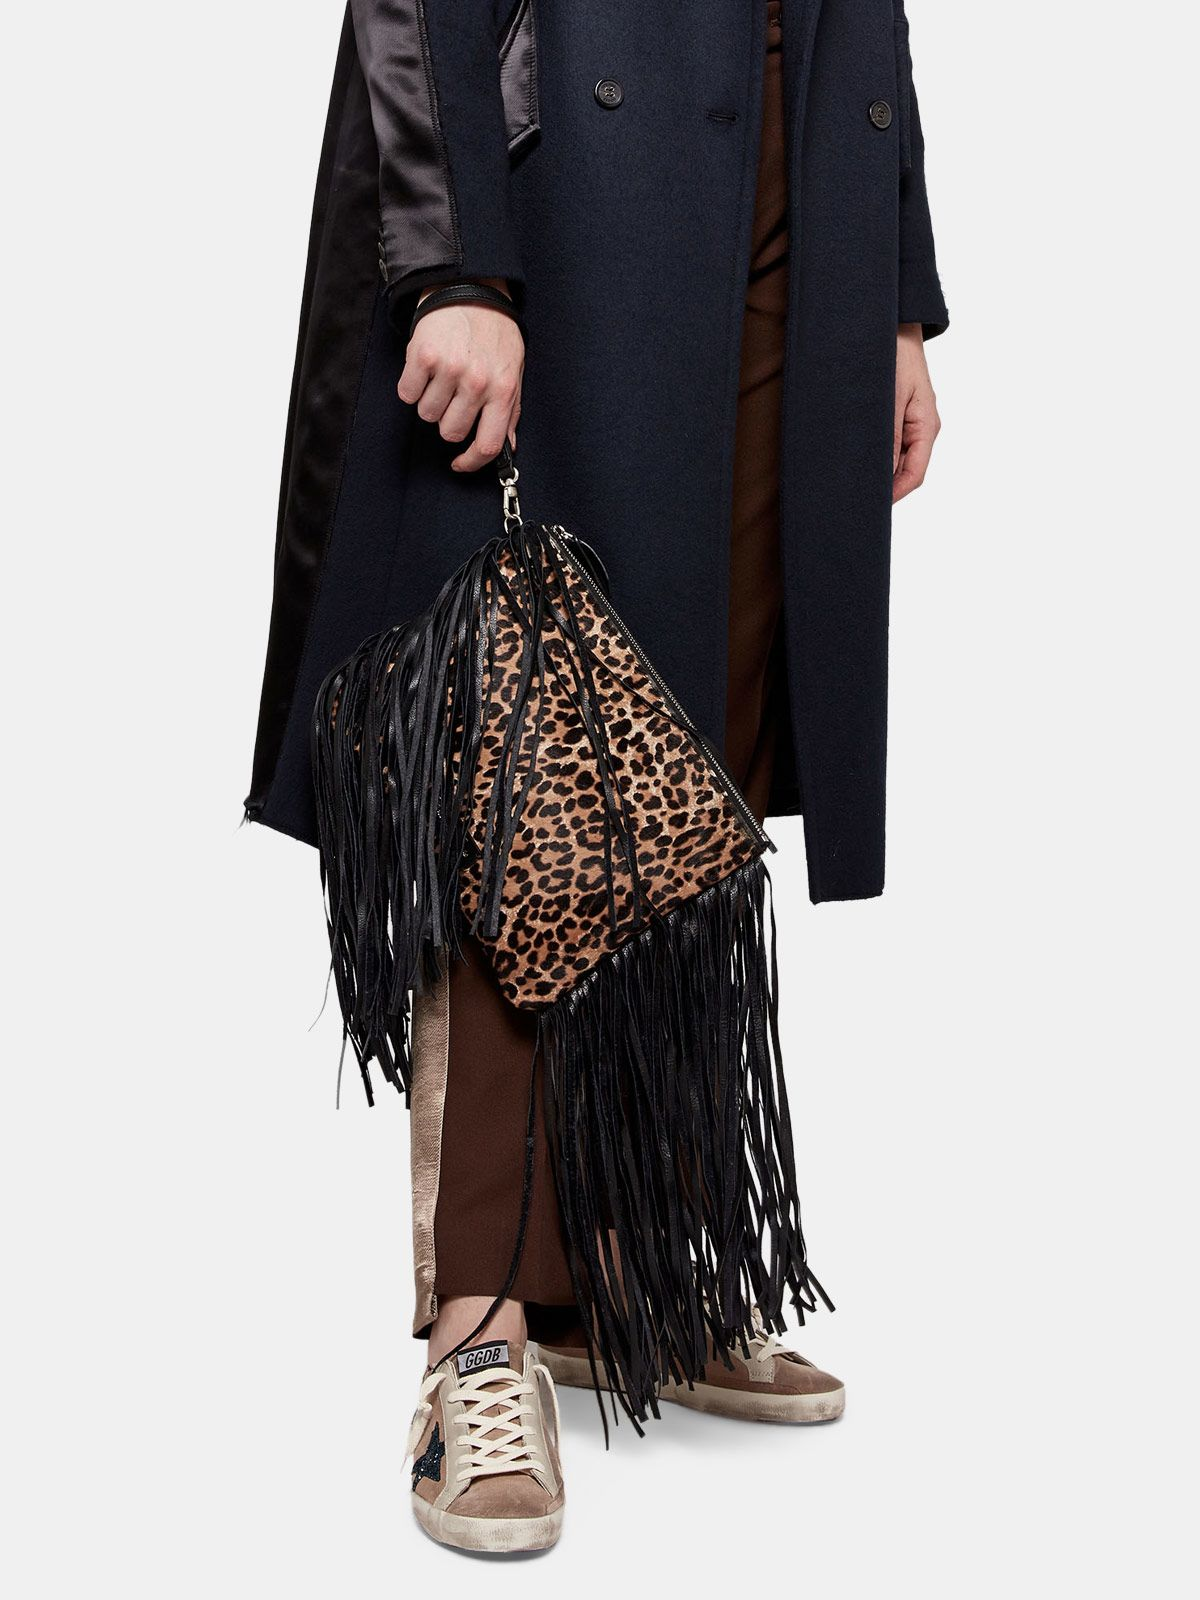 Golden Goose - XL Toast clutch bag in leather with suede fringes in